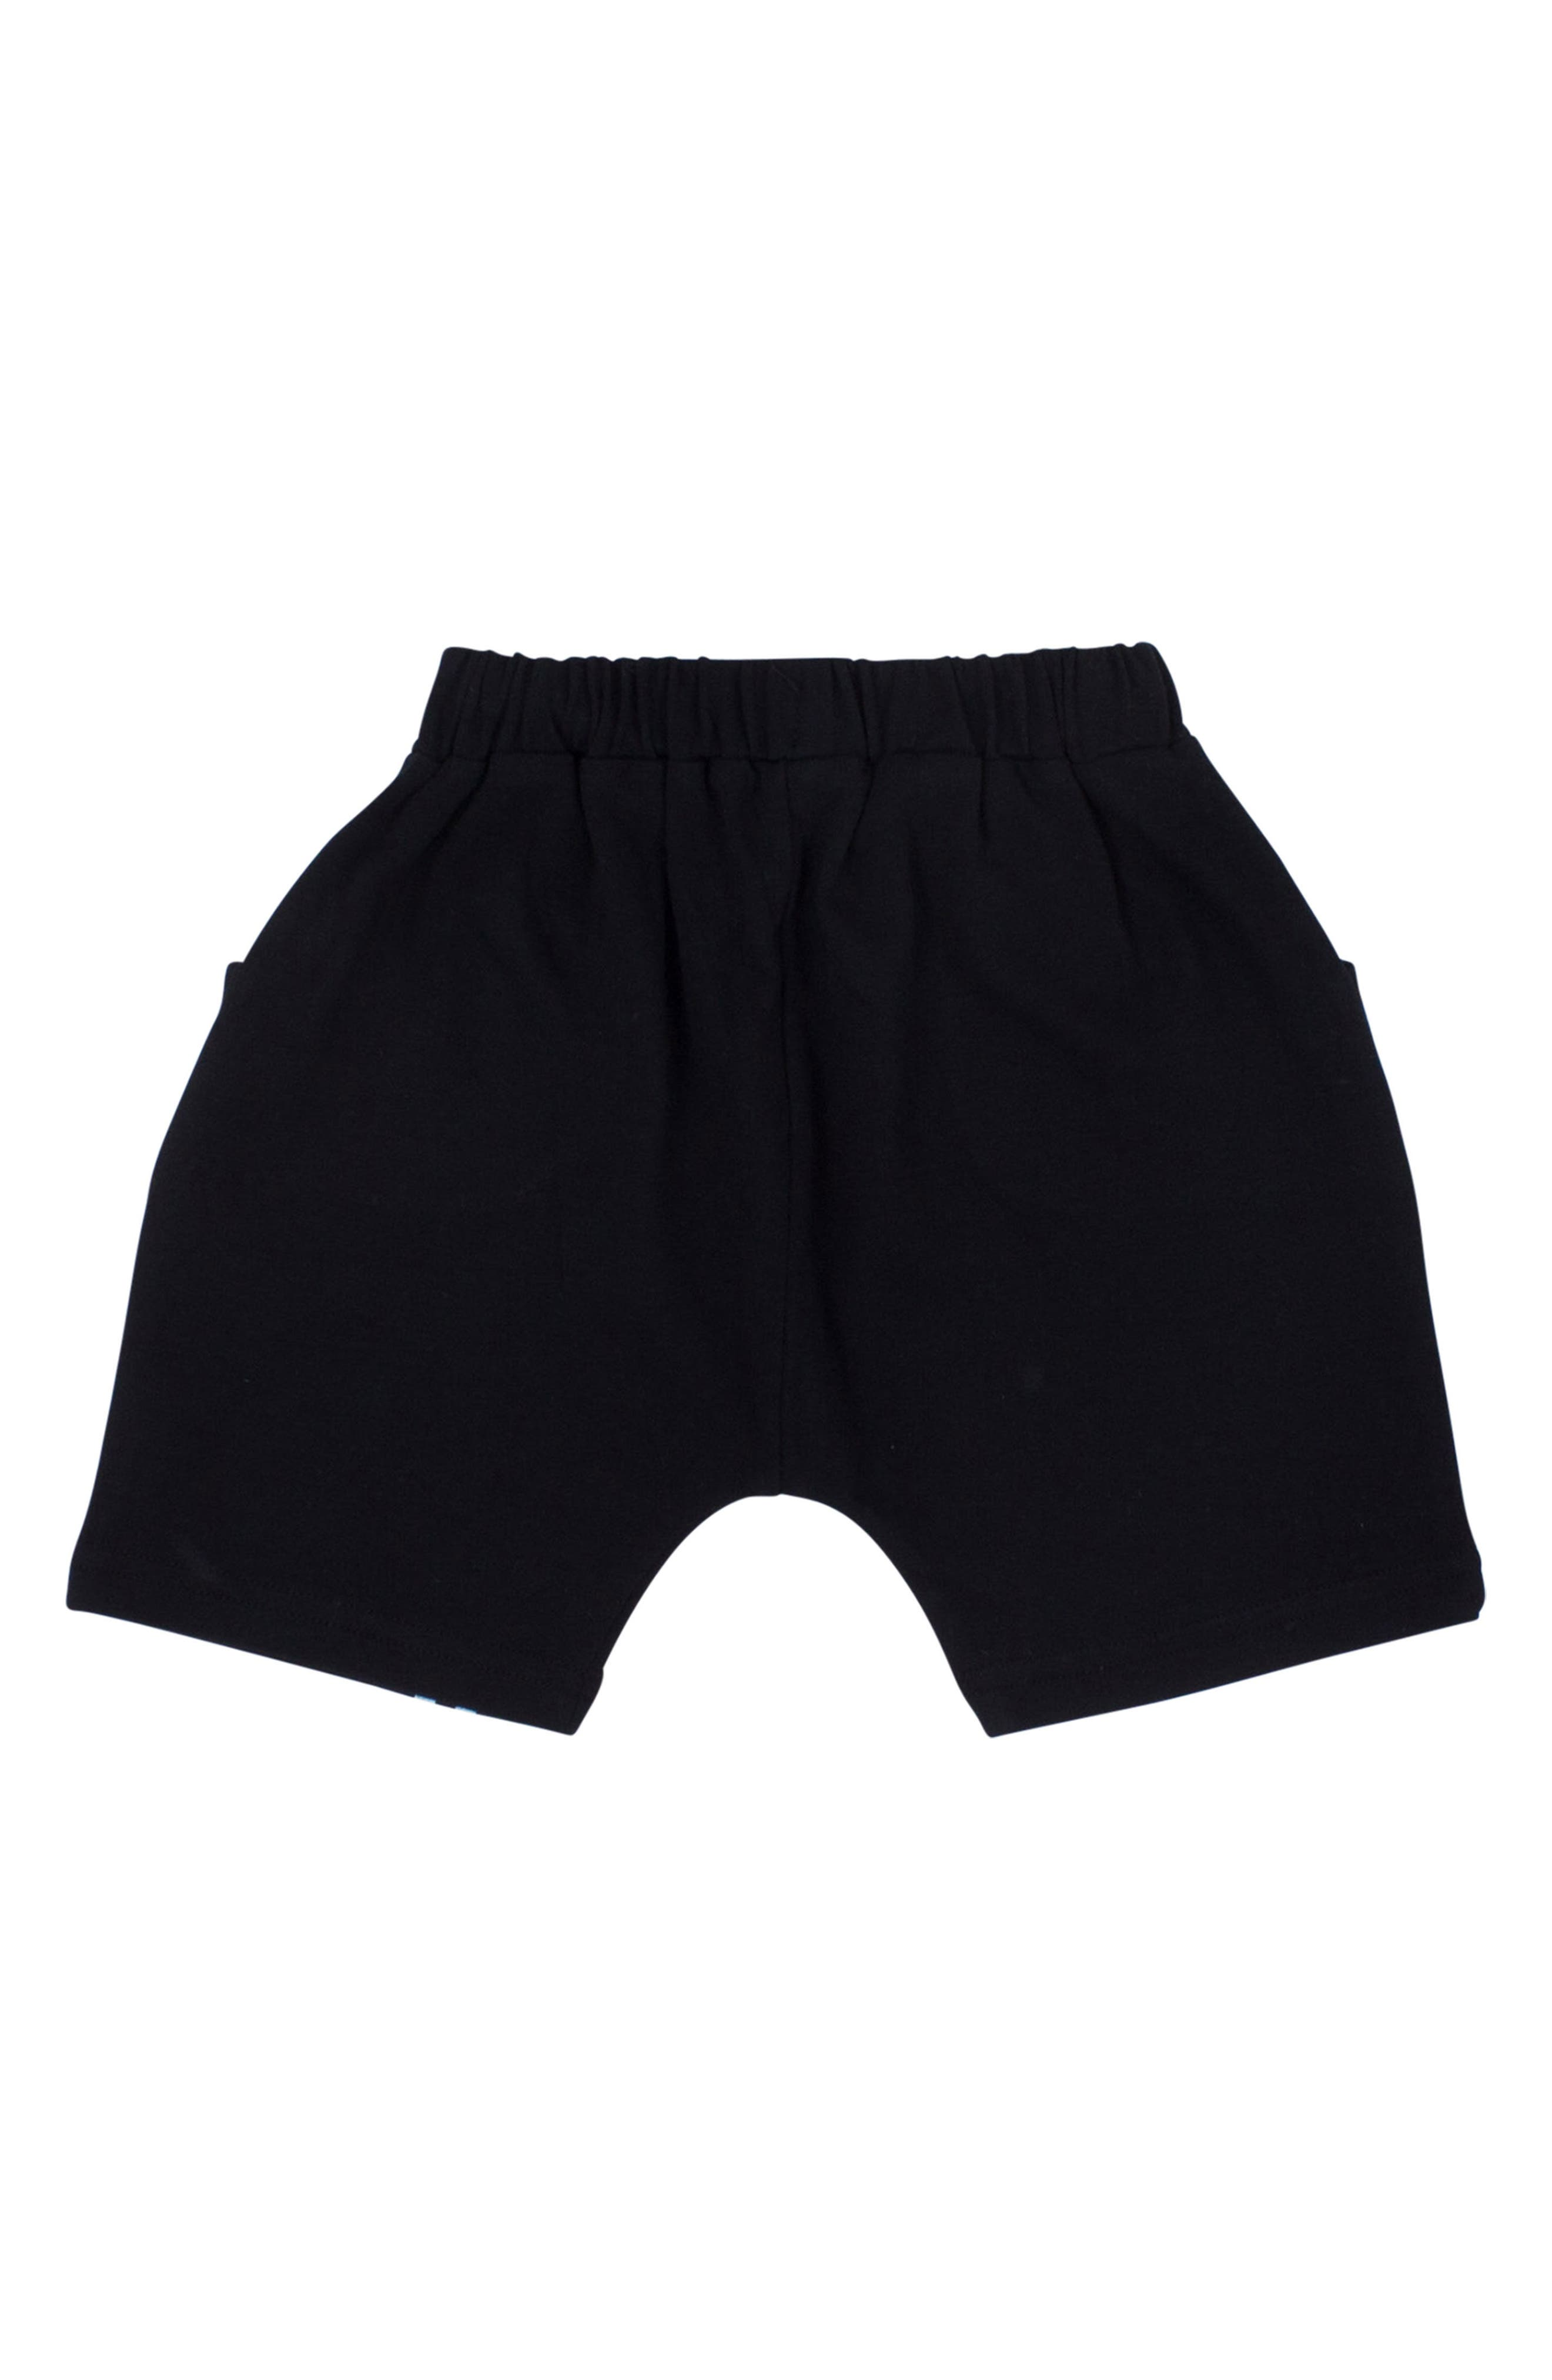 Pause Relaxed Shorts,                             Alternate thumbnail 2, color,                             Black